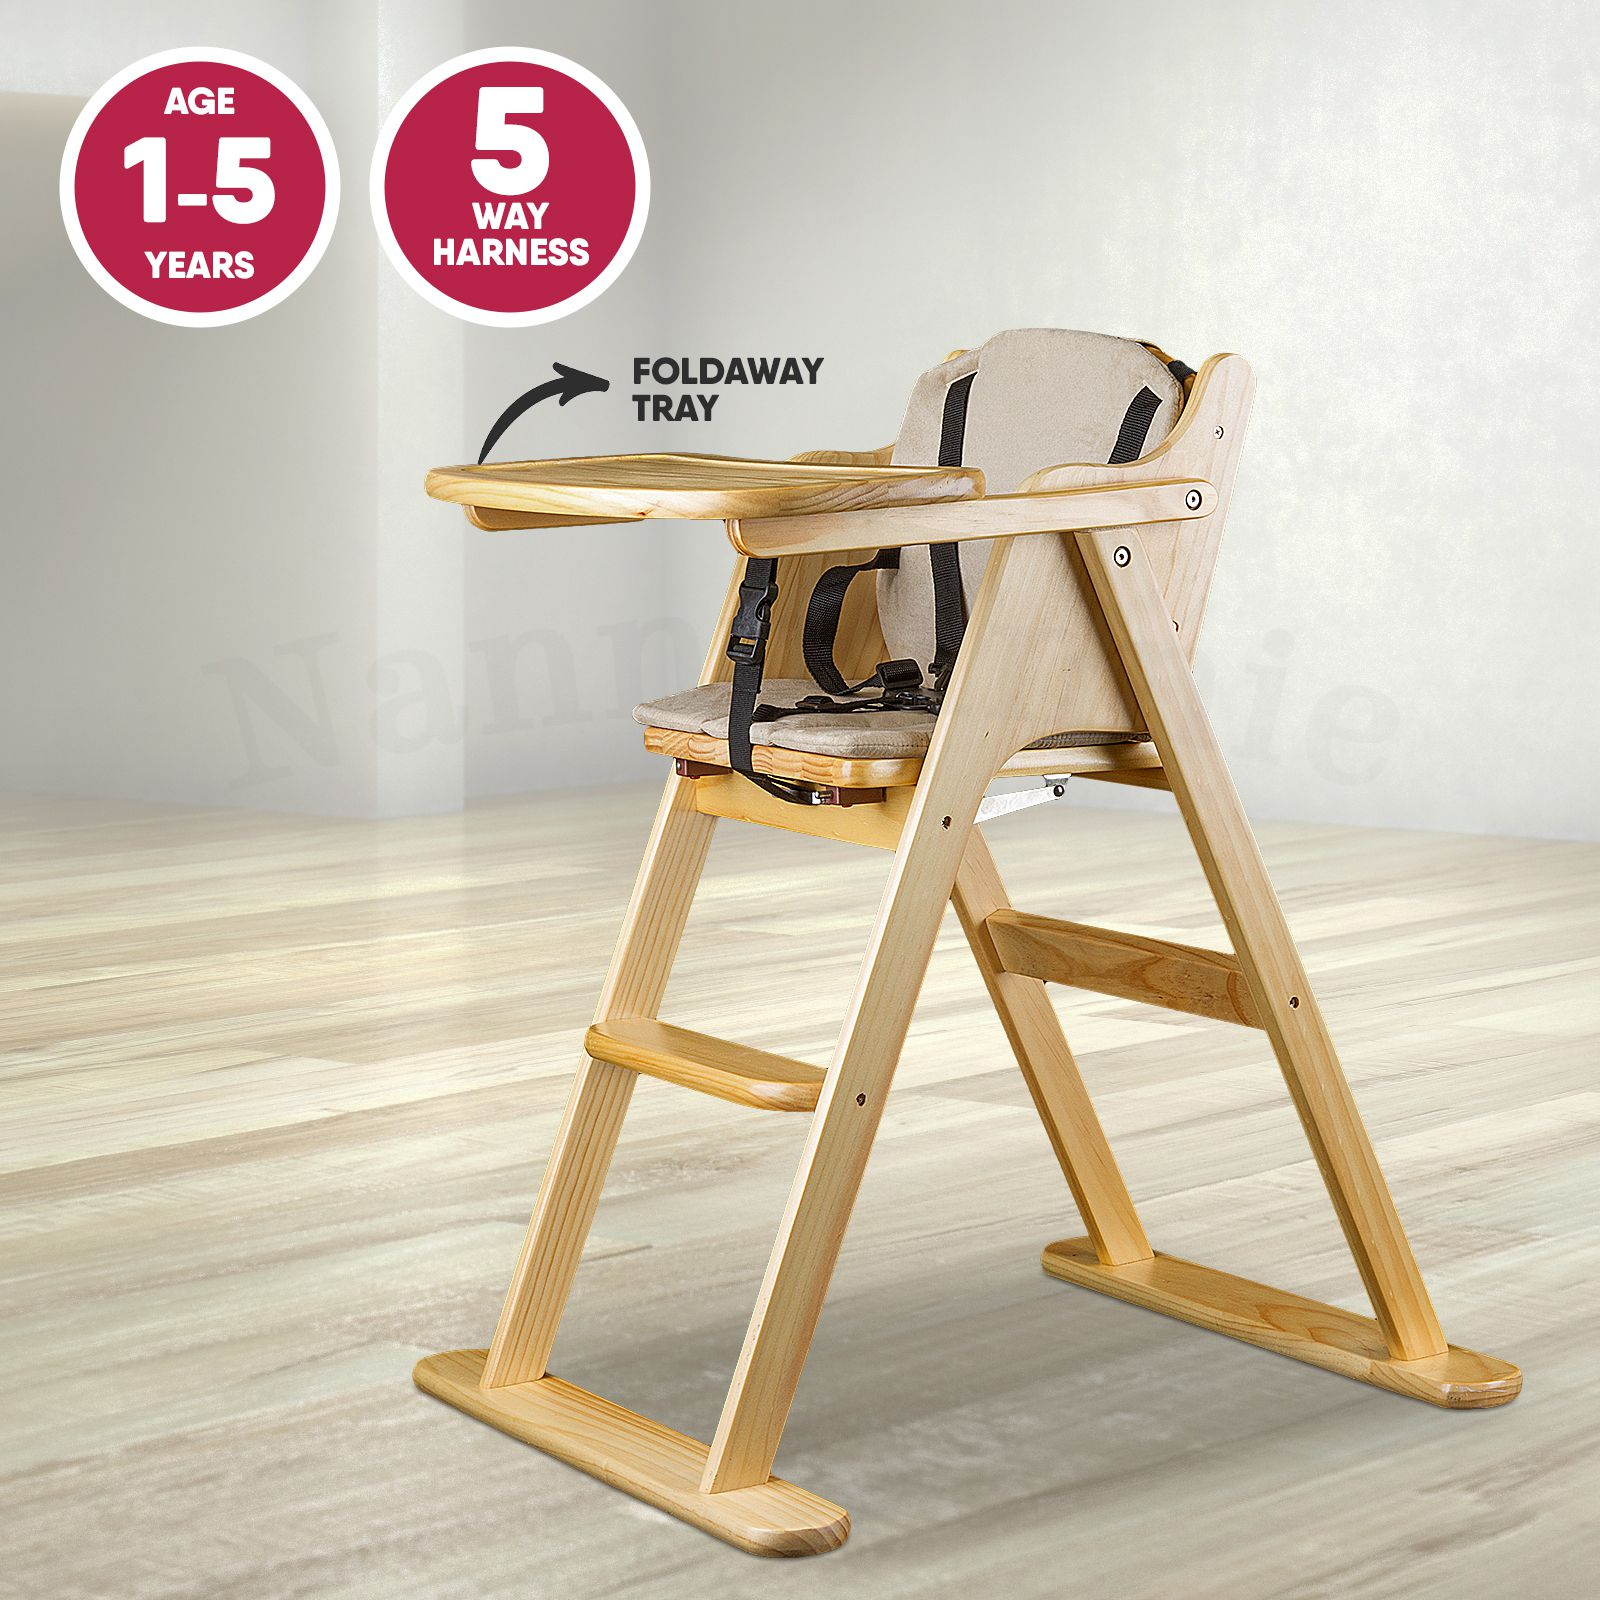 Wooden folding baby highchair fold away high chair